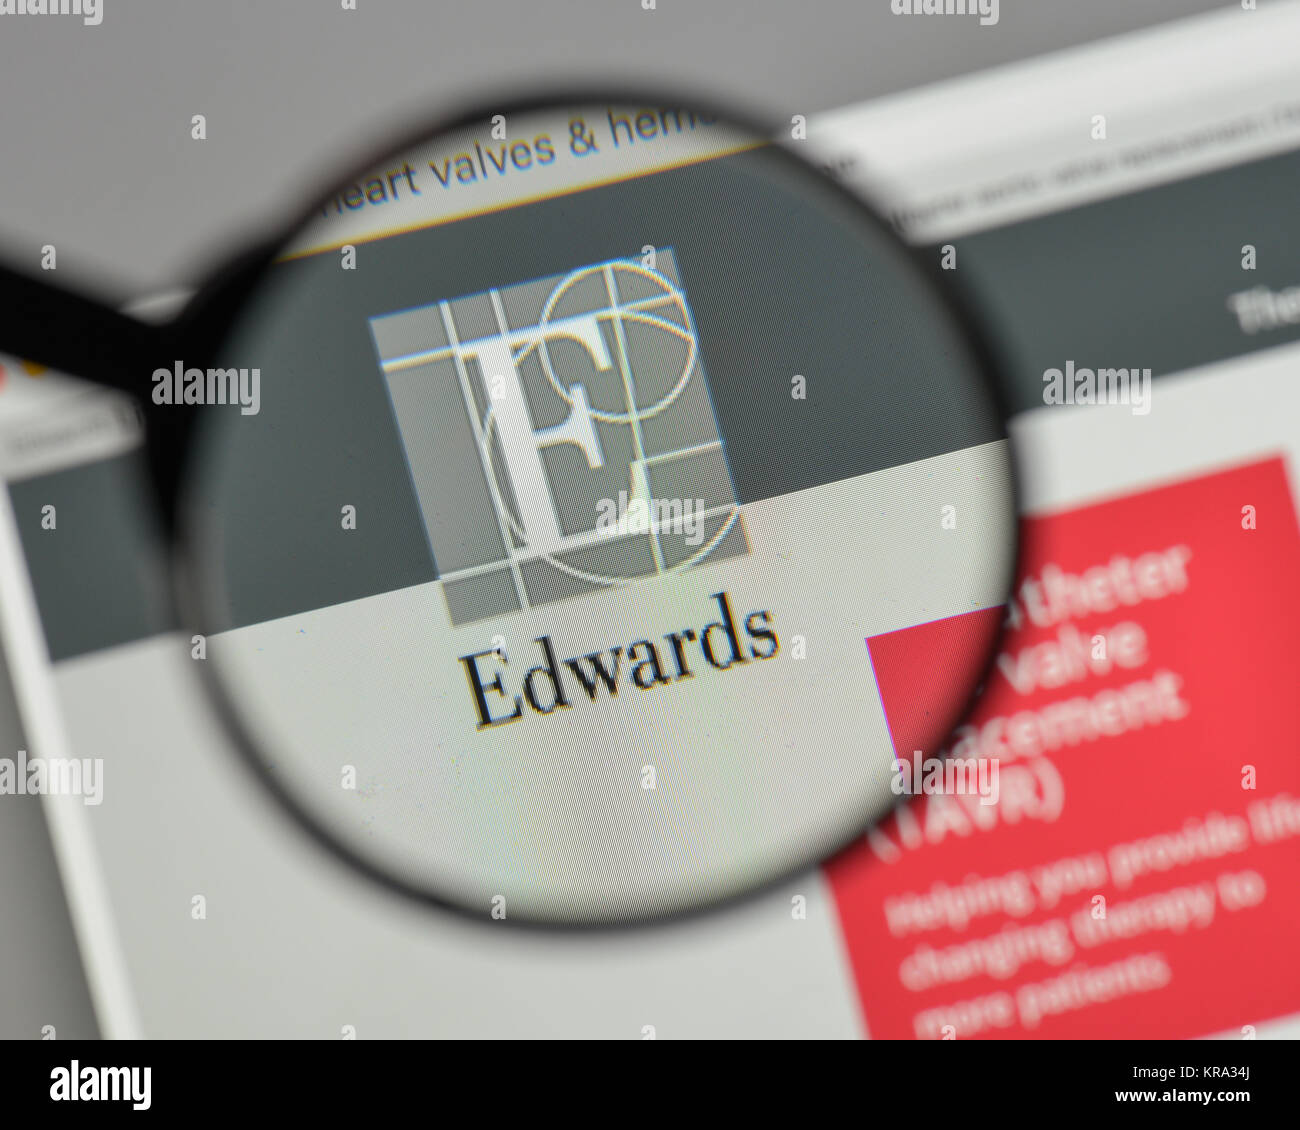 Milan, Italy - August 10, 2017: Edwards Life sciences logo on the website homepage. Stock Photo